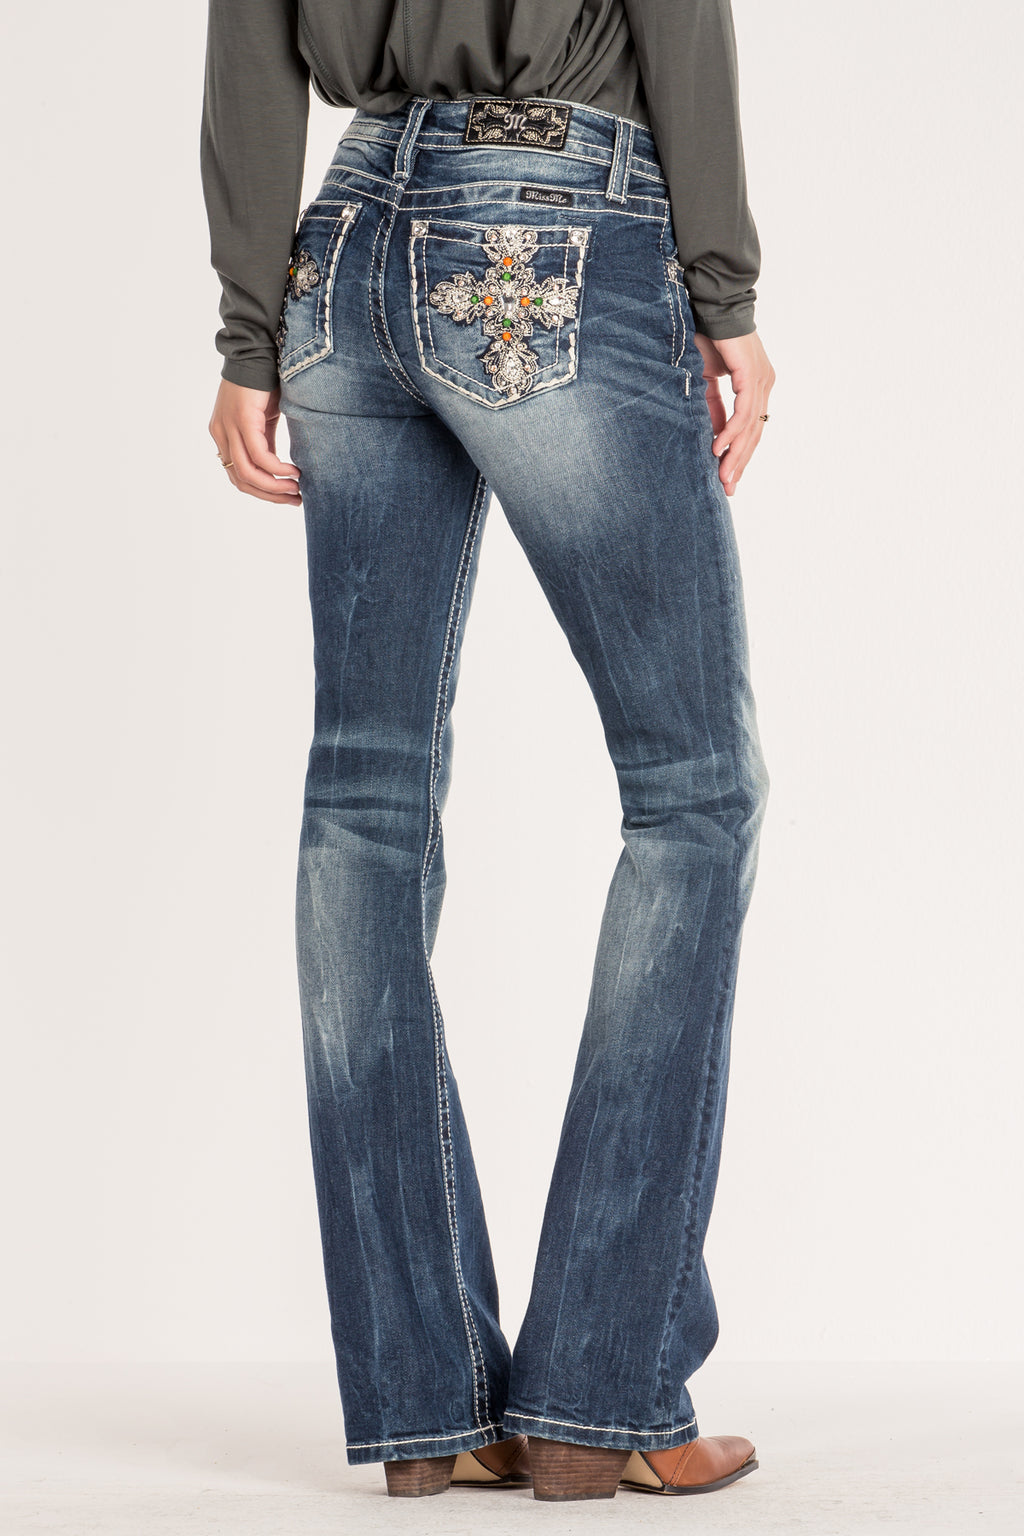 45cbe6ddeab STAR CROSSED LOVE BOOT CUT JEANS